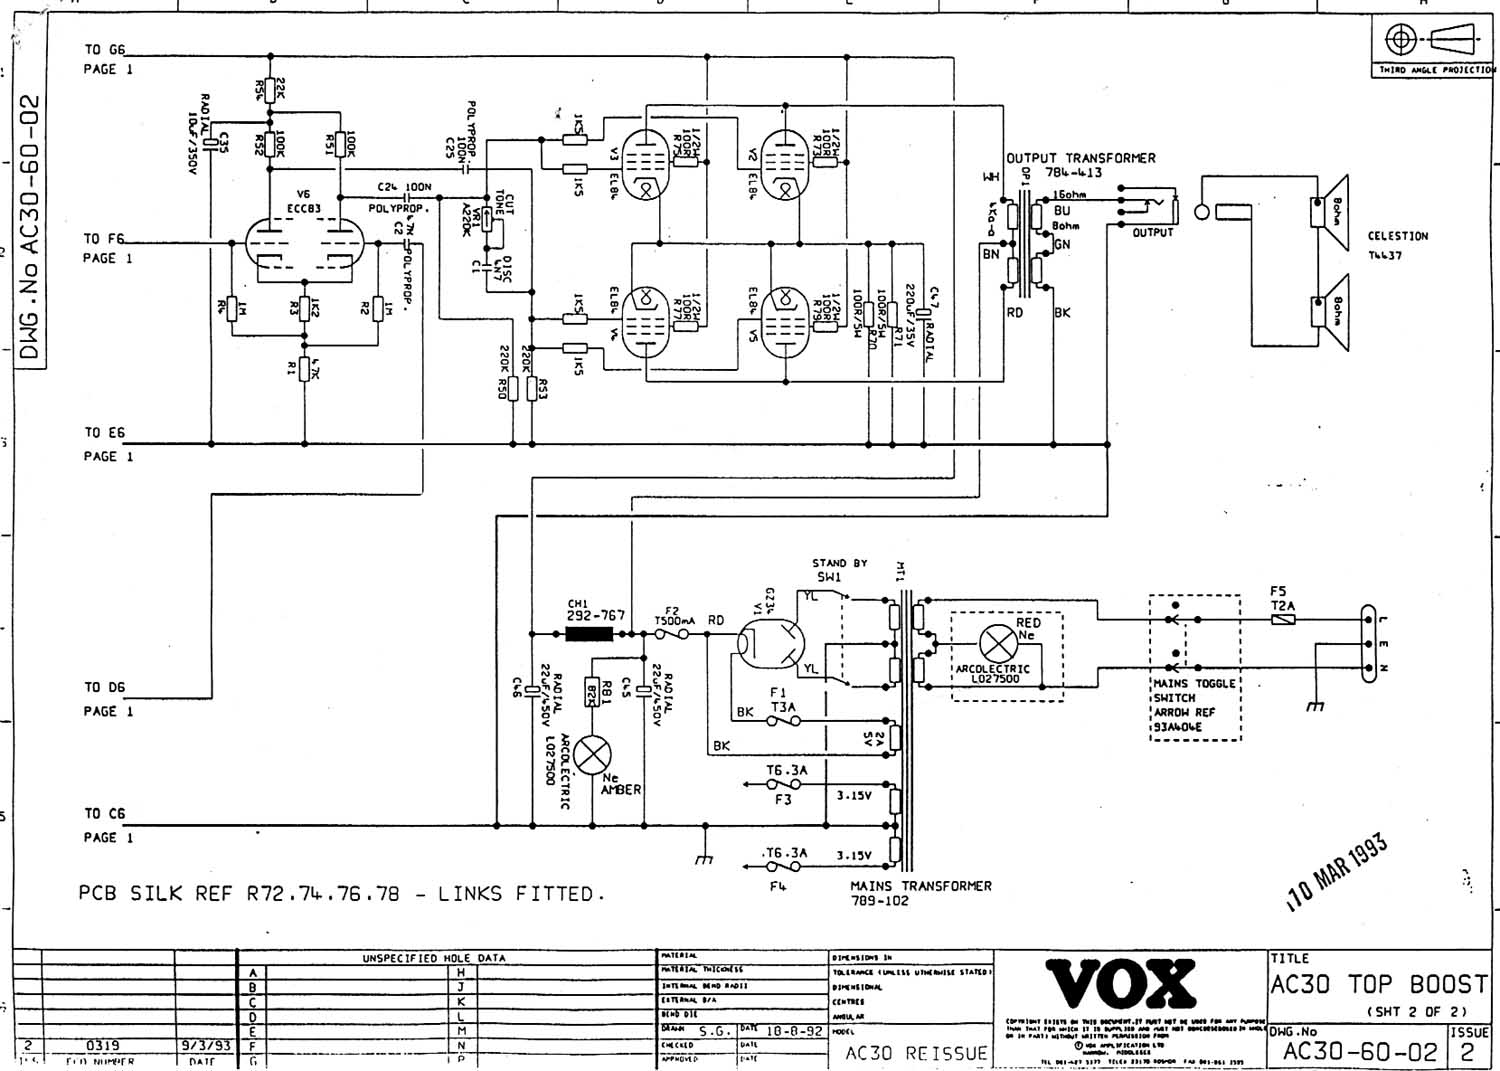 Vox Vintage Circuit Diagrams Engine Management Wiring Diagram 1989 Jeep Wrangler Download